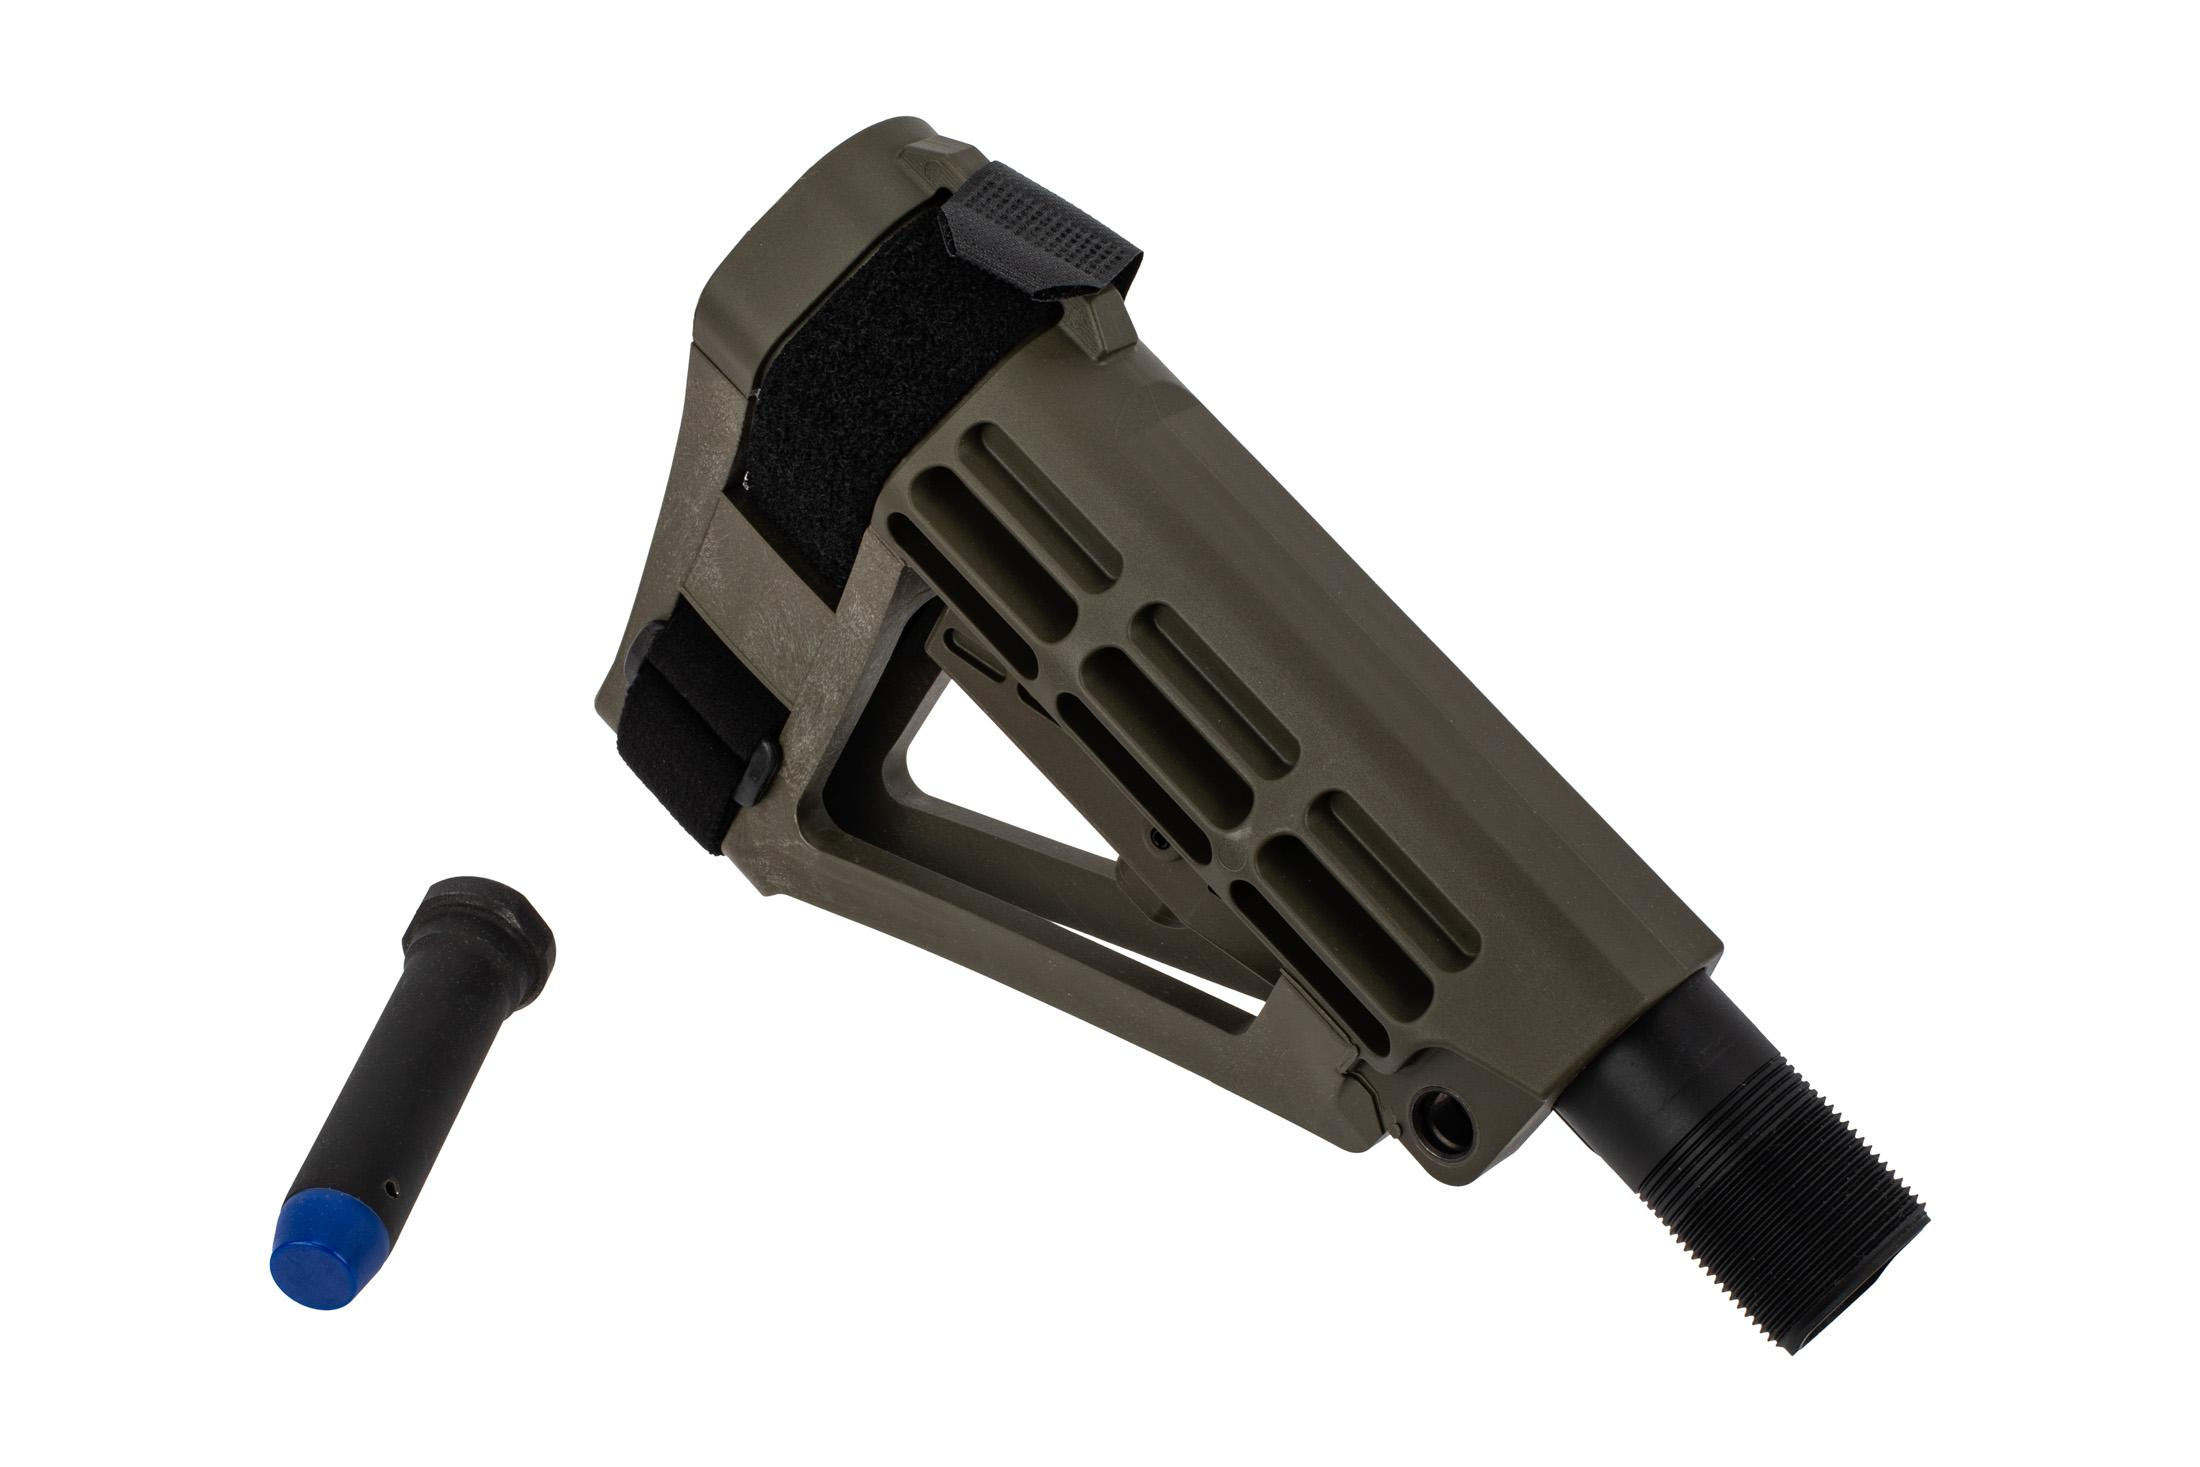 SB Tactical SBA4 Pistol Stabilizing Brace - OD Green with Expo Arms H1 AR-15 Carbine Buffer with Blue Bumper